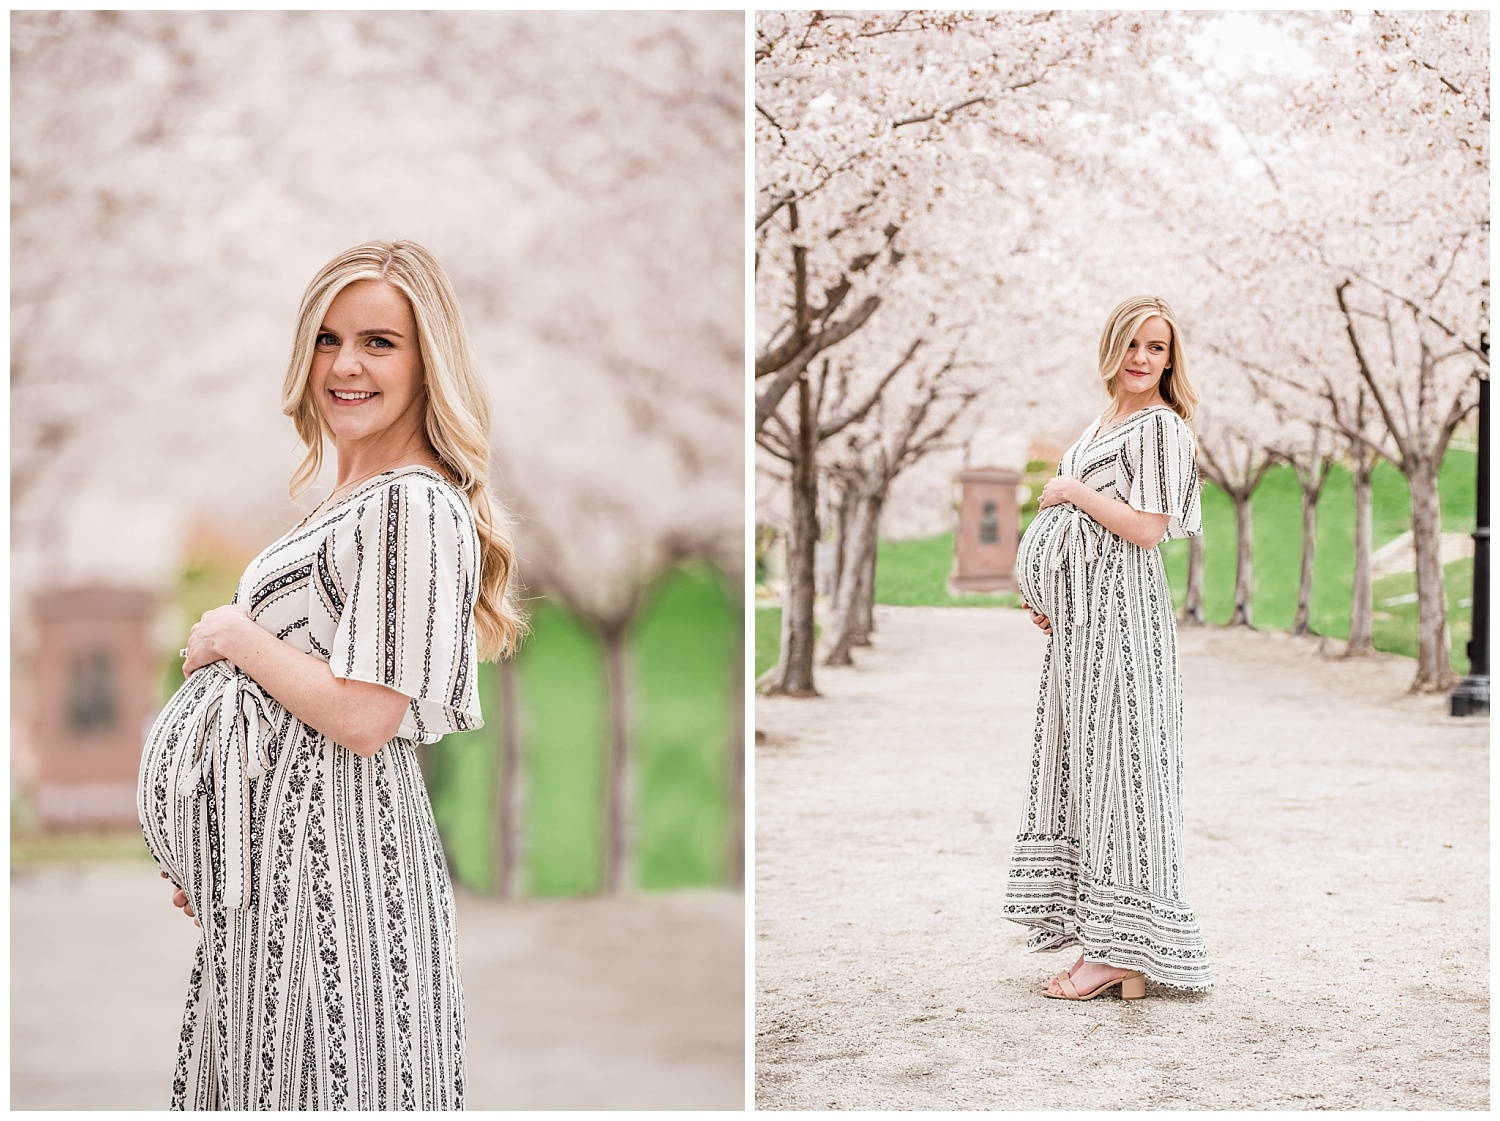 Dan Page Photography, Utah State Capitol Maternity Session, Spring Cherry Blossoms (9).jpg